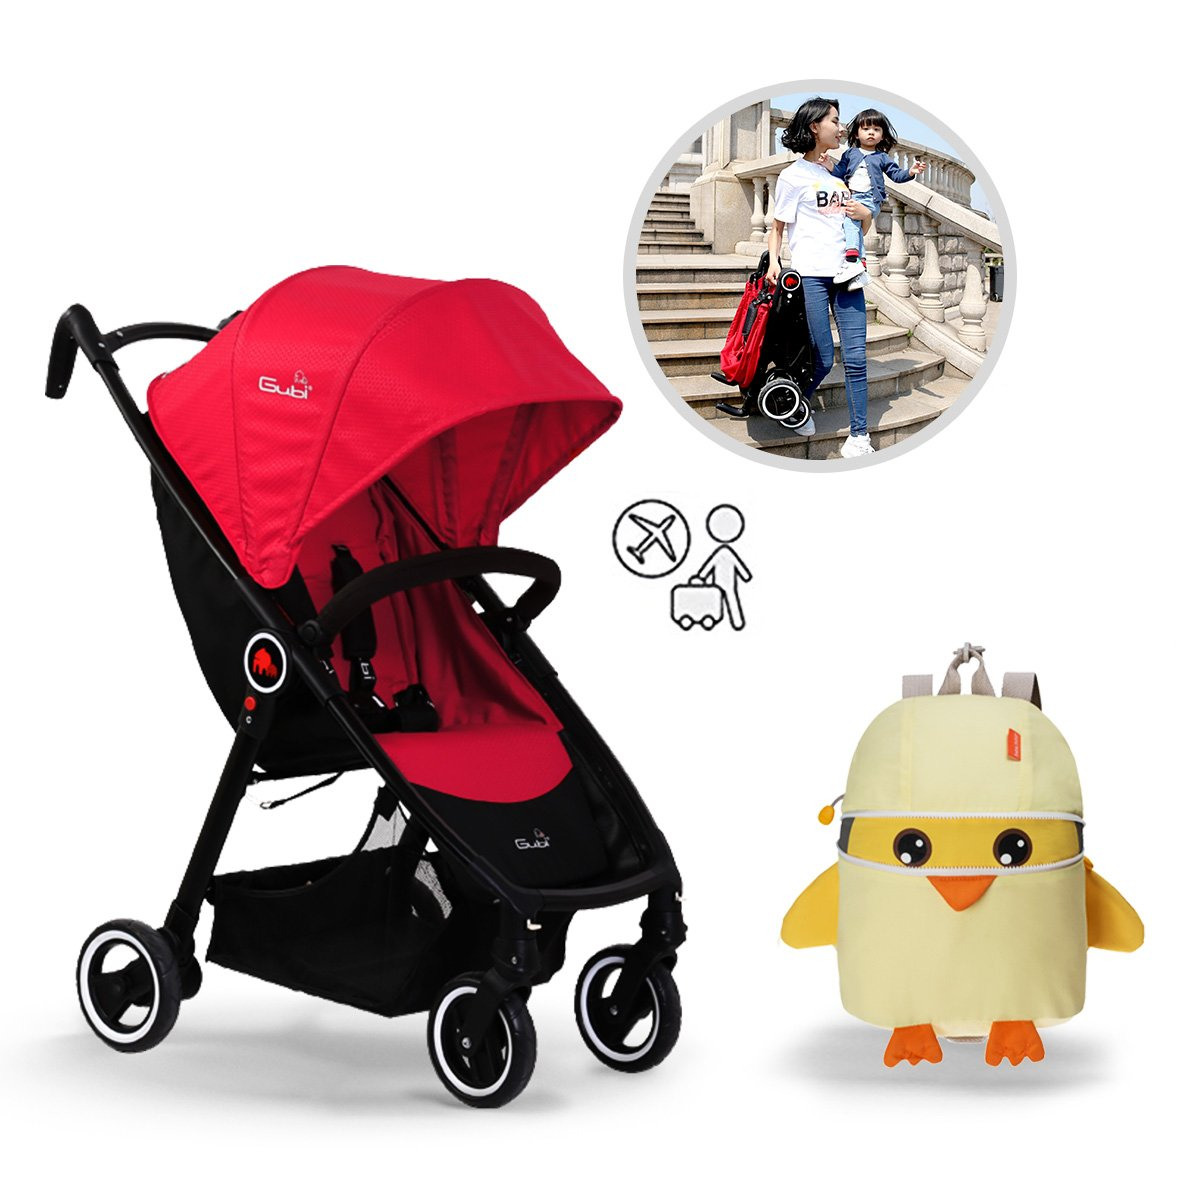 Bebamour Baby Stroller Travel System Convenience Stroller with 5-Point Safety System for Newborn and Toddler (Red)